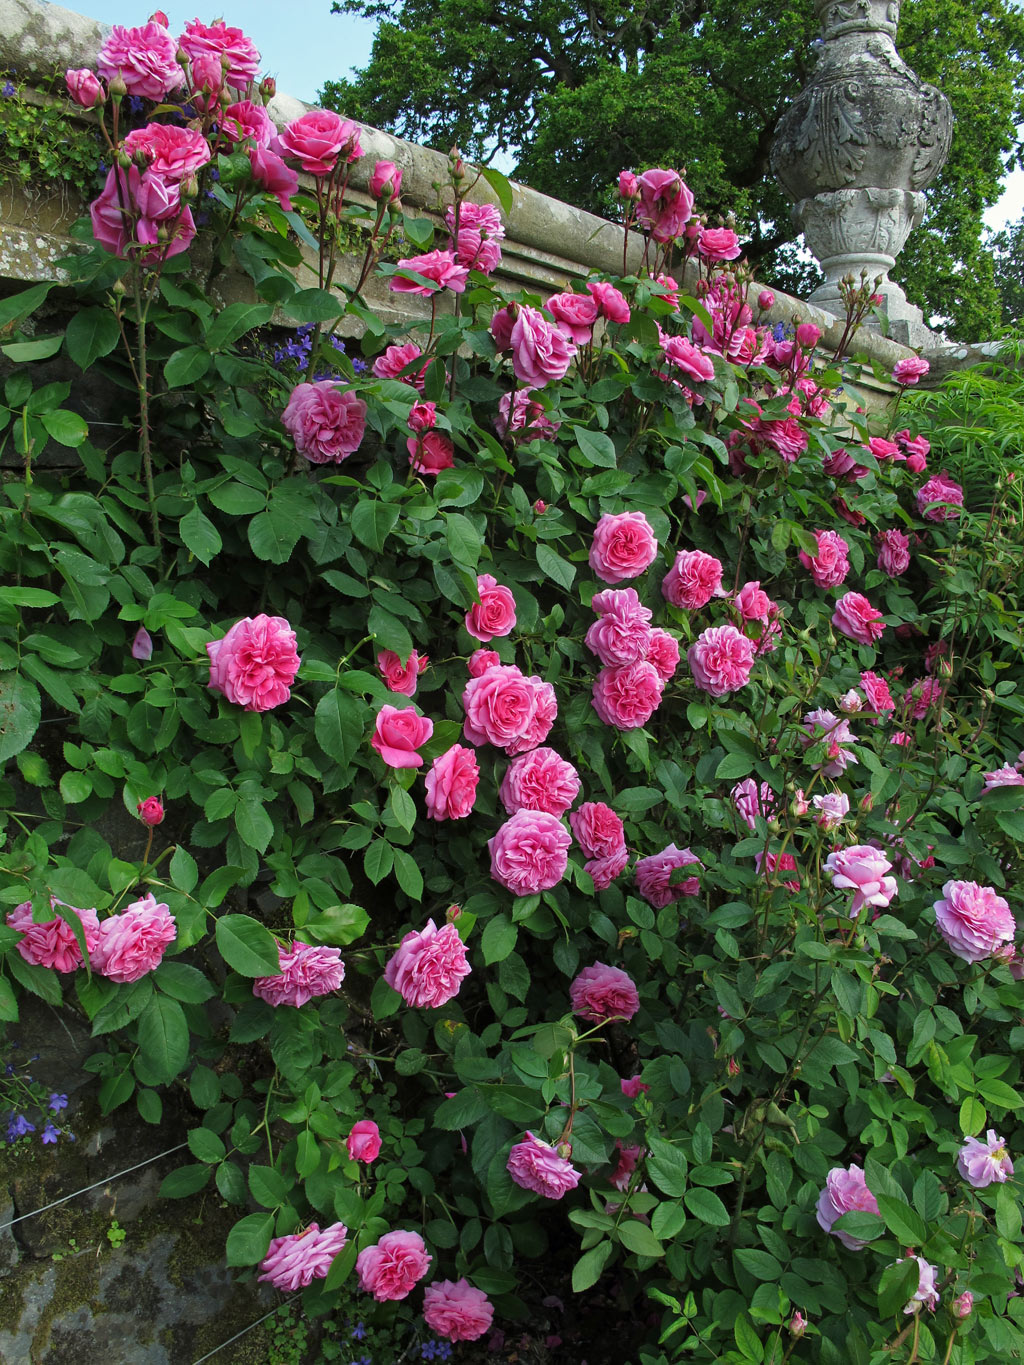 Roses In Garden: Bodnant Garden: One Of Britain's Best Rose Gardens